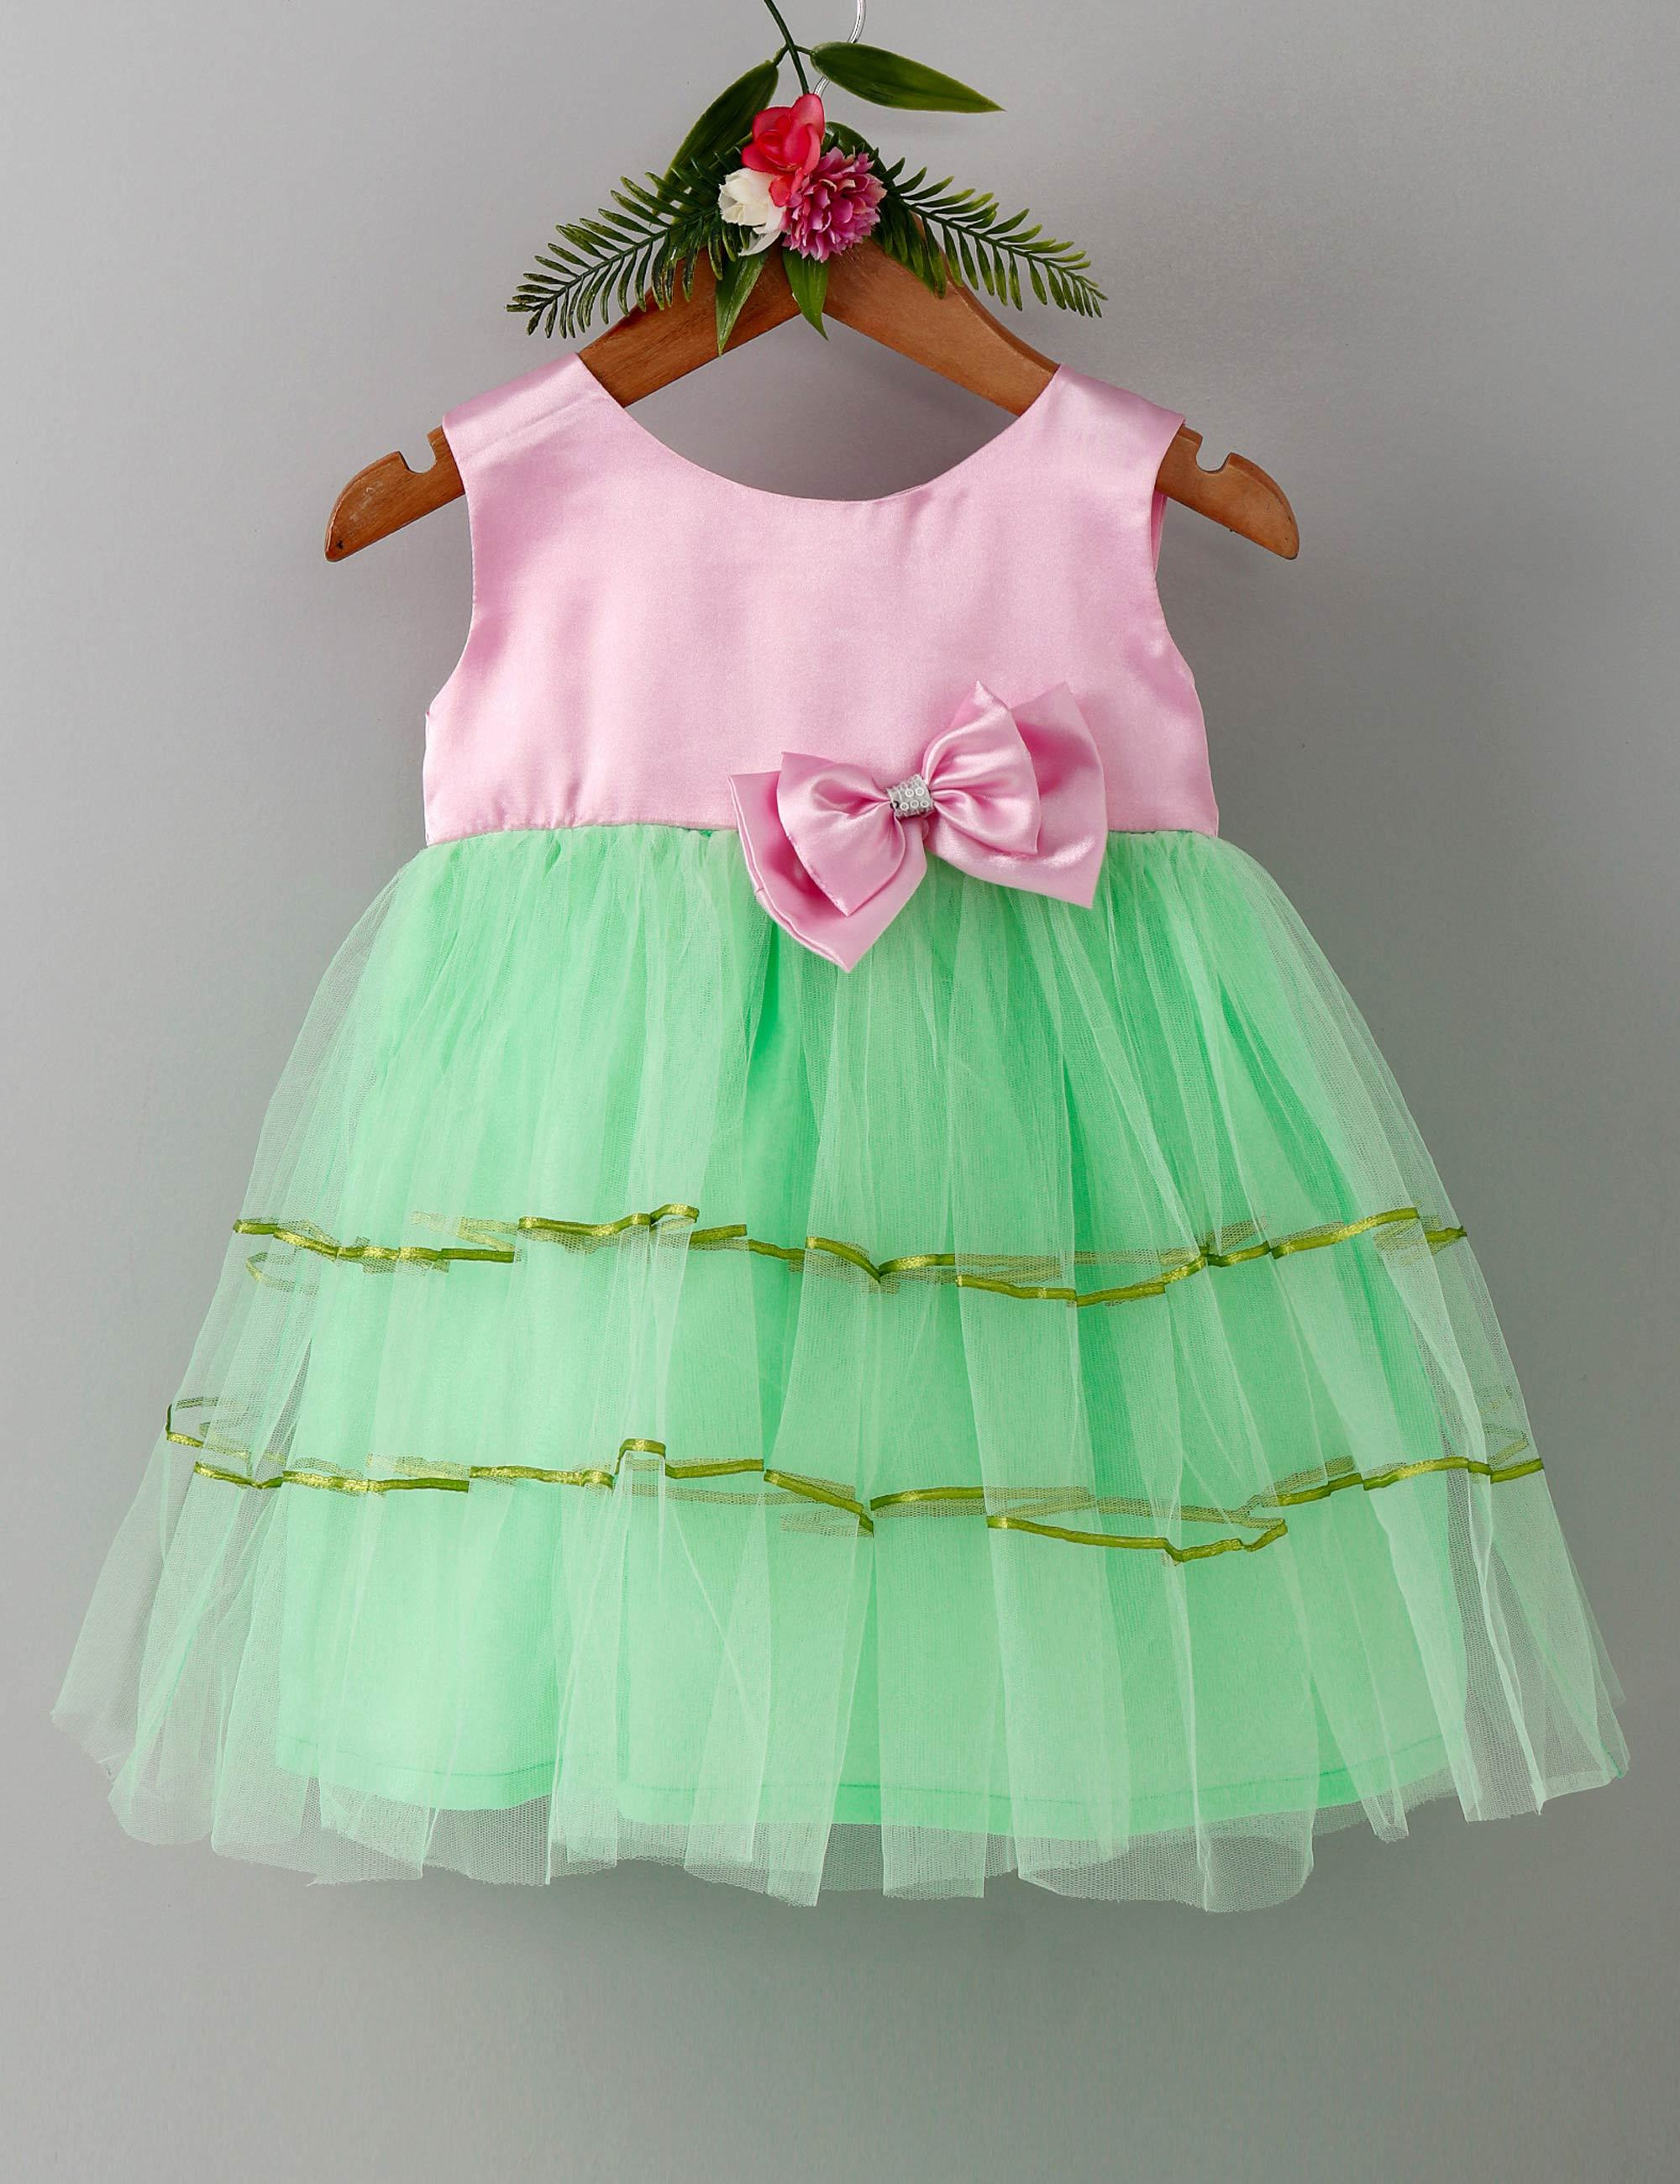 Double bow sleeveless baby party frock-Pink and Green